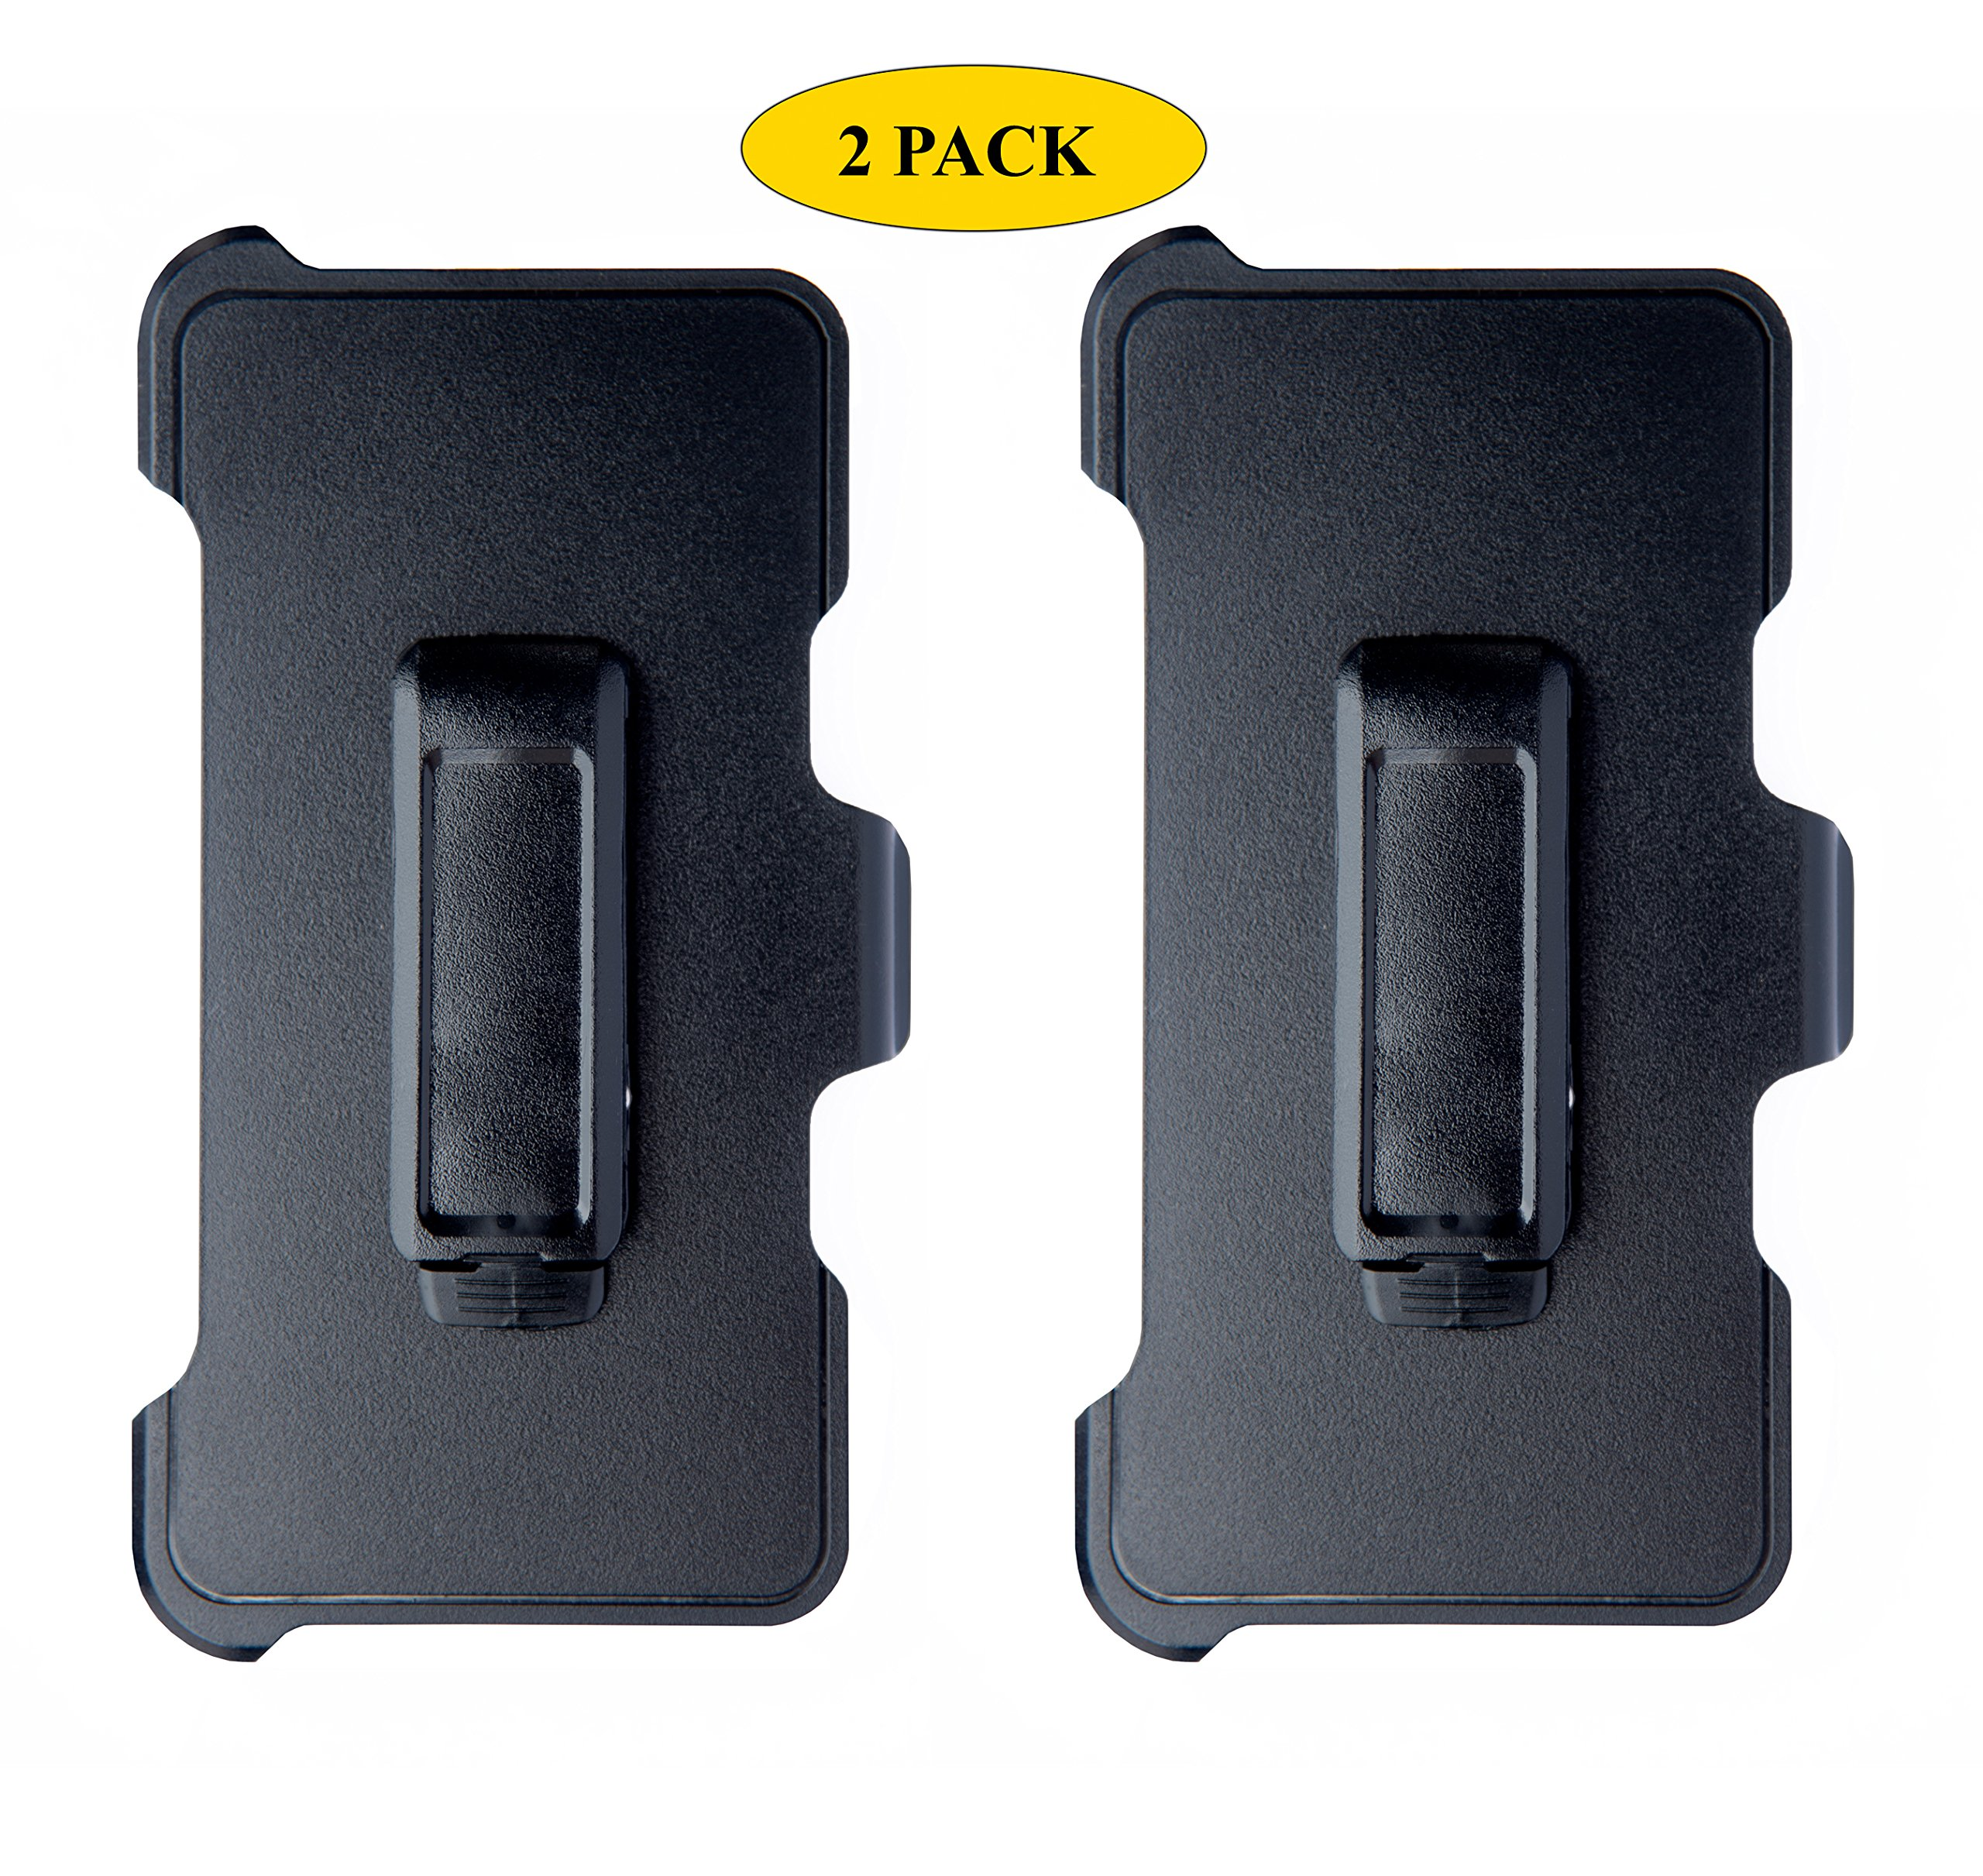 AlphaCell Holster Belt Clip Replacement Compatible with OtterBox Defender Series Case for Apple iPhone XR (ONLY) - 2 Pack by AlphaCell